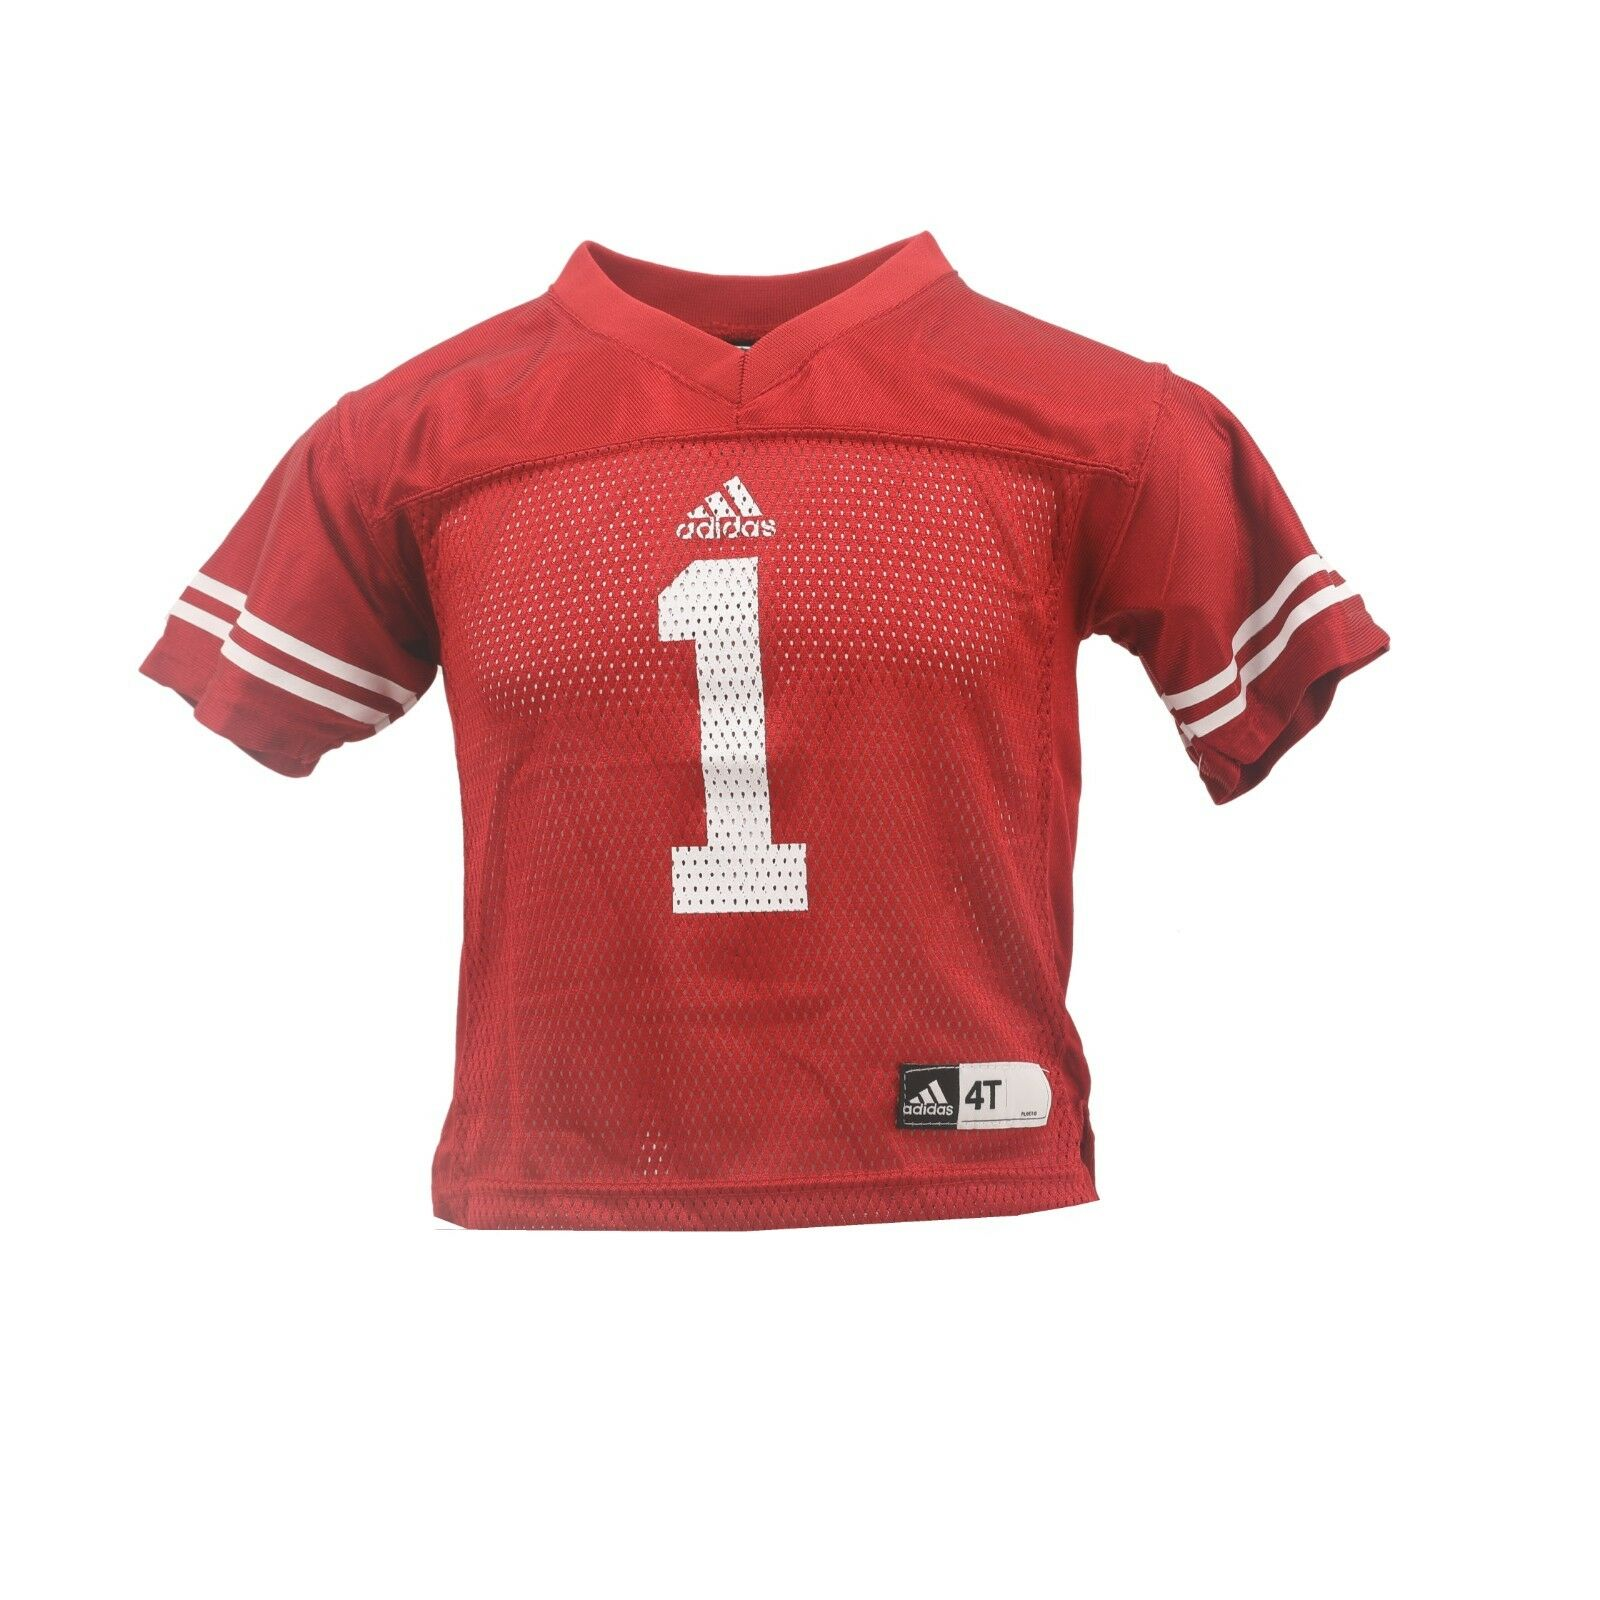 Wisconsin Badgers Official NCAA Adidas Infant & Toddler Size ...